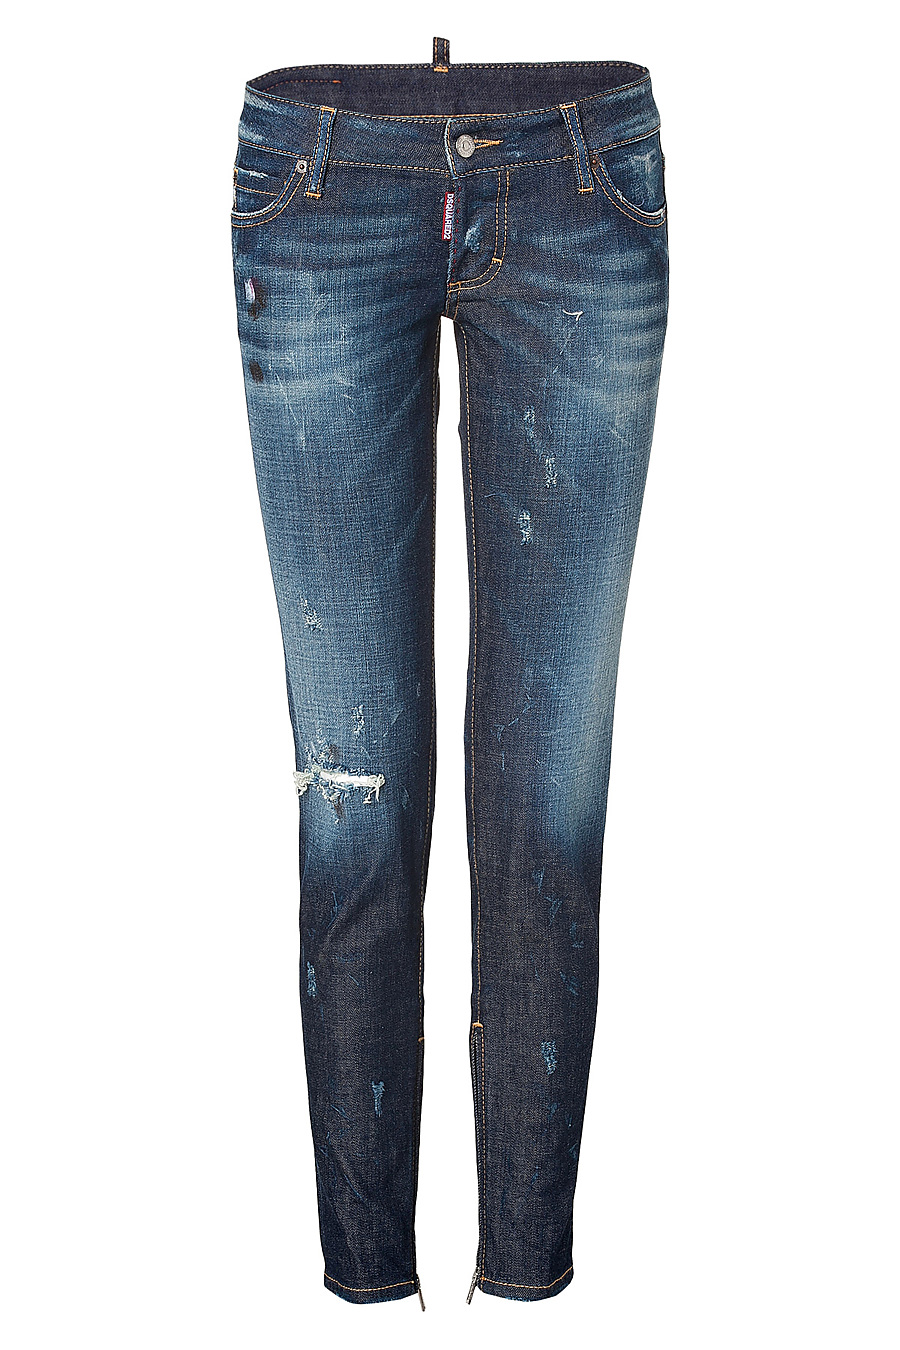 Dsquared2 Distressed Skinny Jeans with Zip Trim